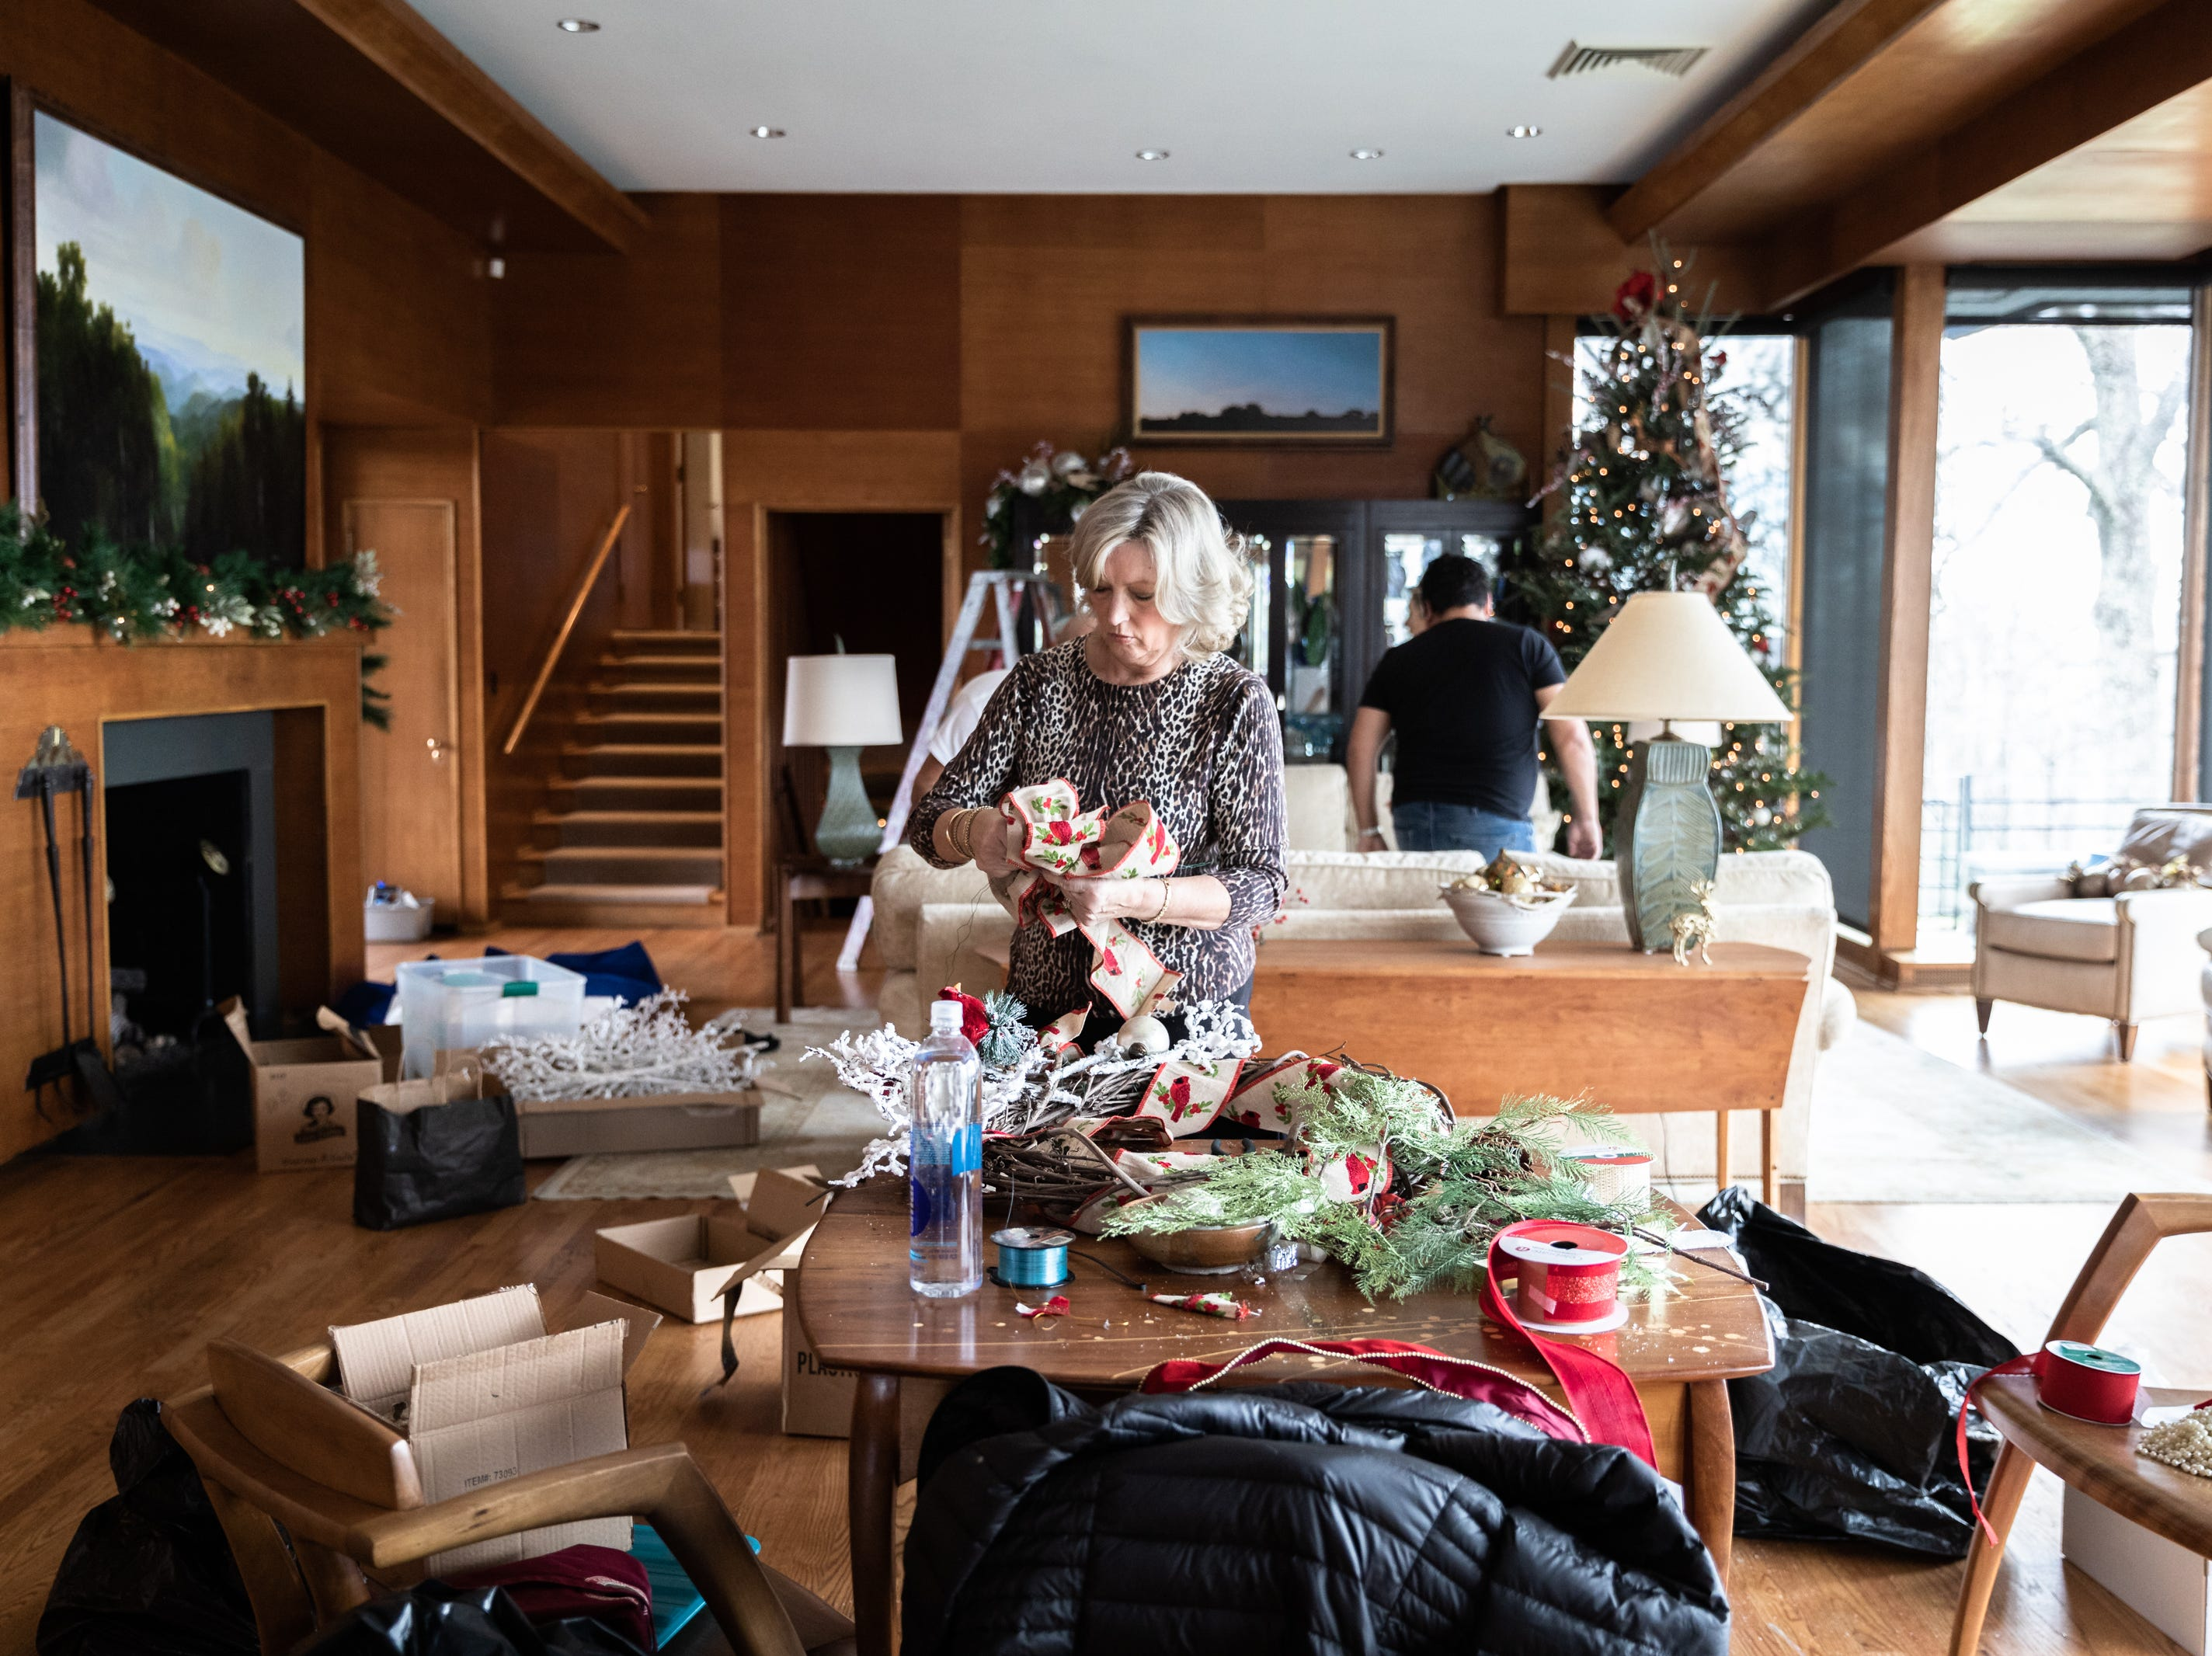 June Ray, of Waynesville, a member of the Governor's Western Residence Board of Directors, works on assembling a wreath for the holidays at the residence on Patton Mountain Road in Asheville, Nov. 29, 2018.